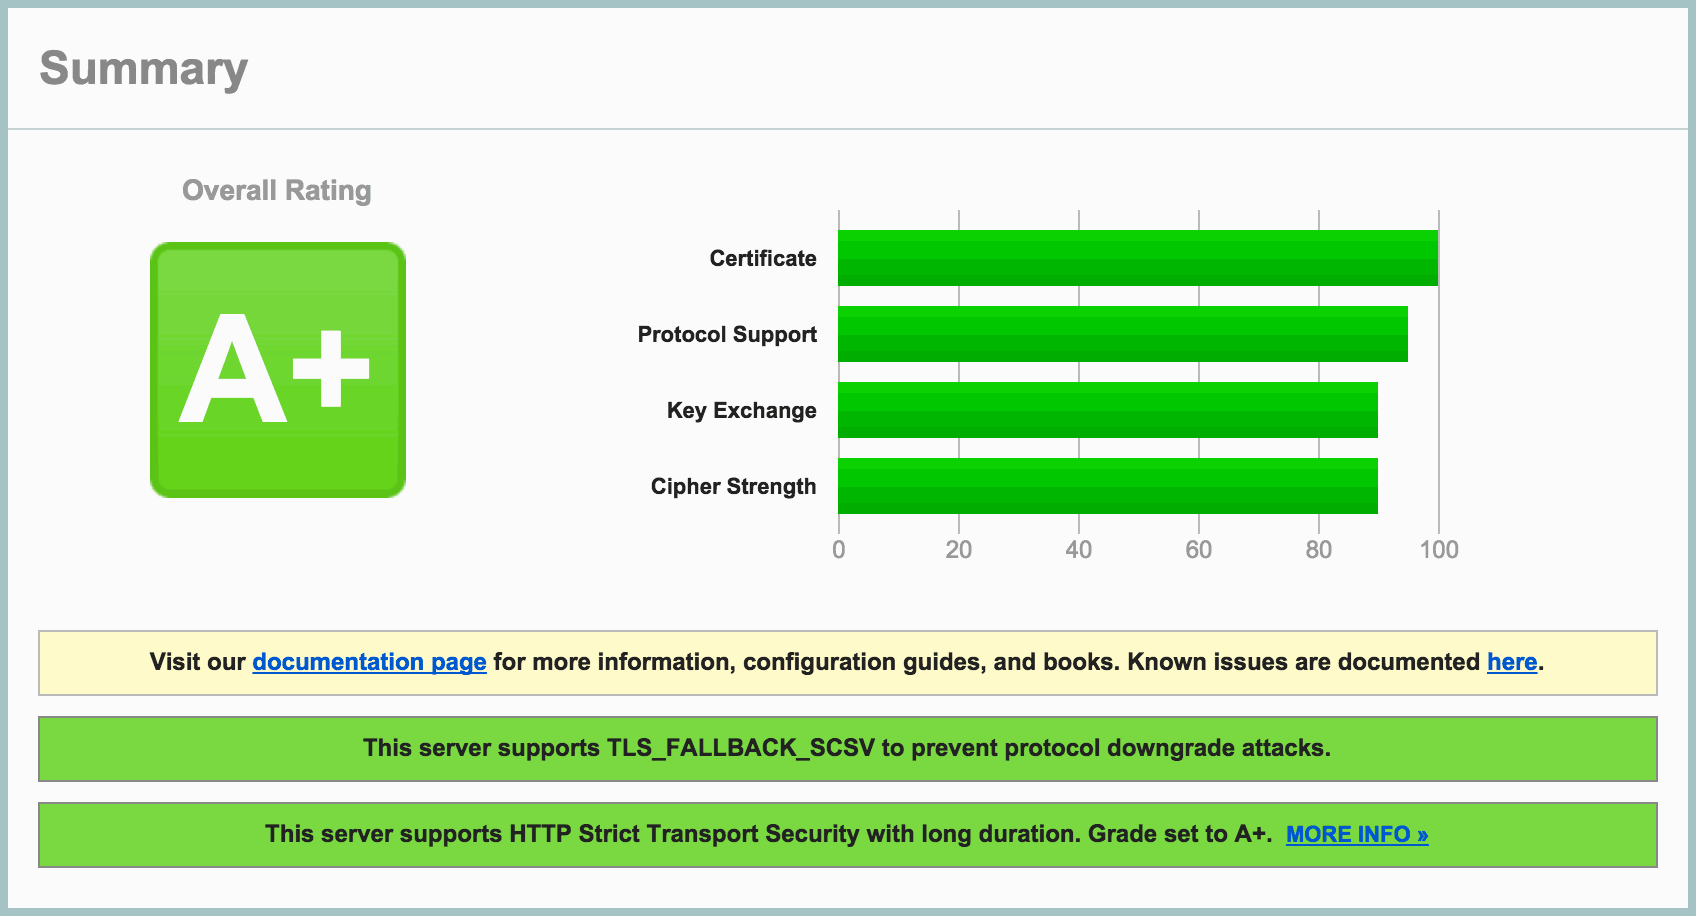 SSL Labs A+ result